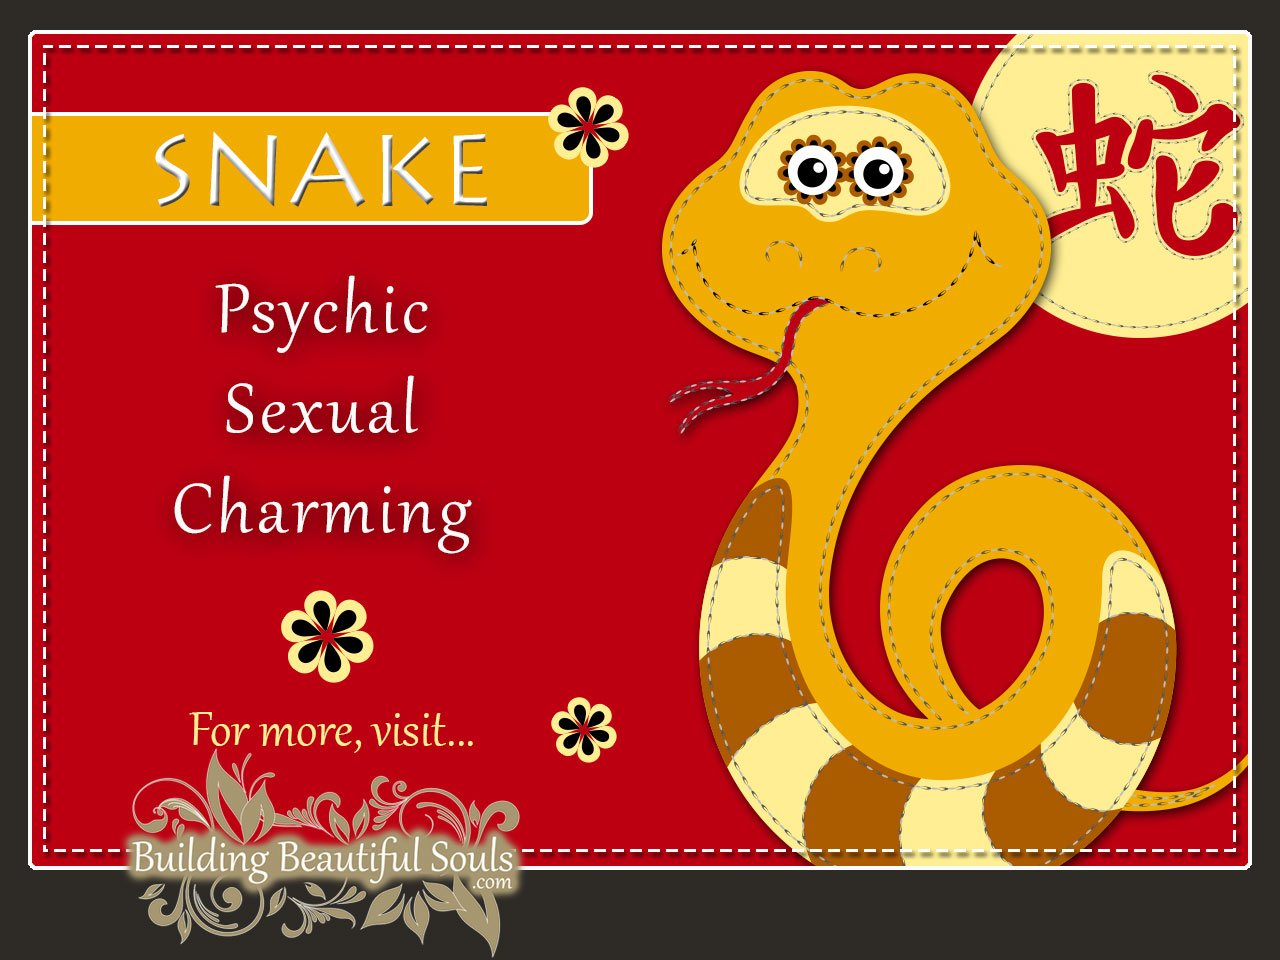 chinese zodiac snake year of the snake chinese new year animals 1290x960 - Chinese New Year 2016 Zodiac